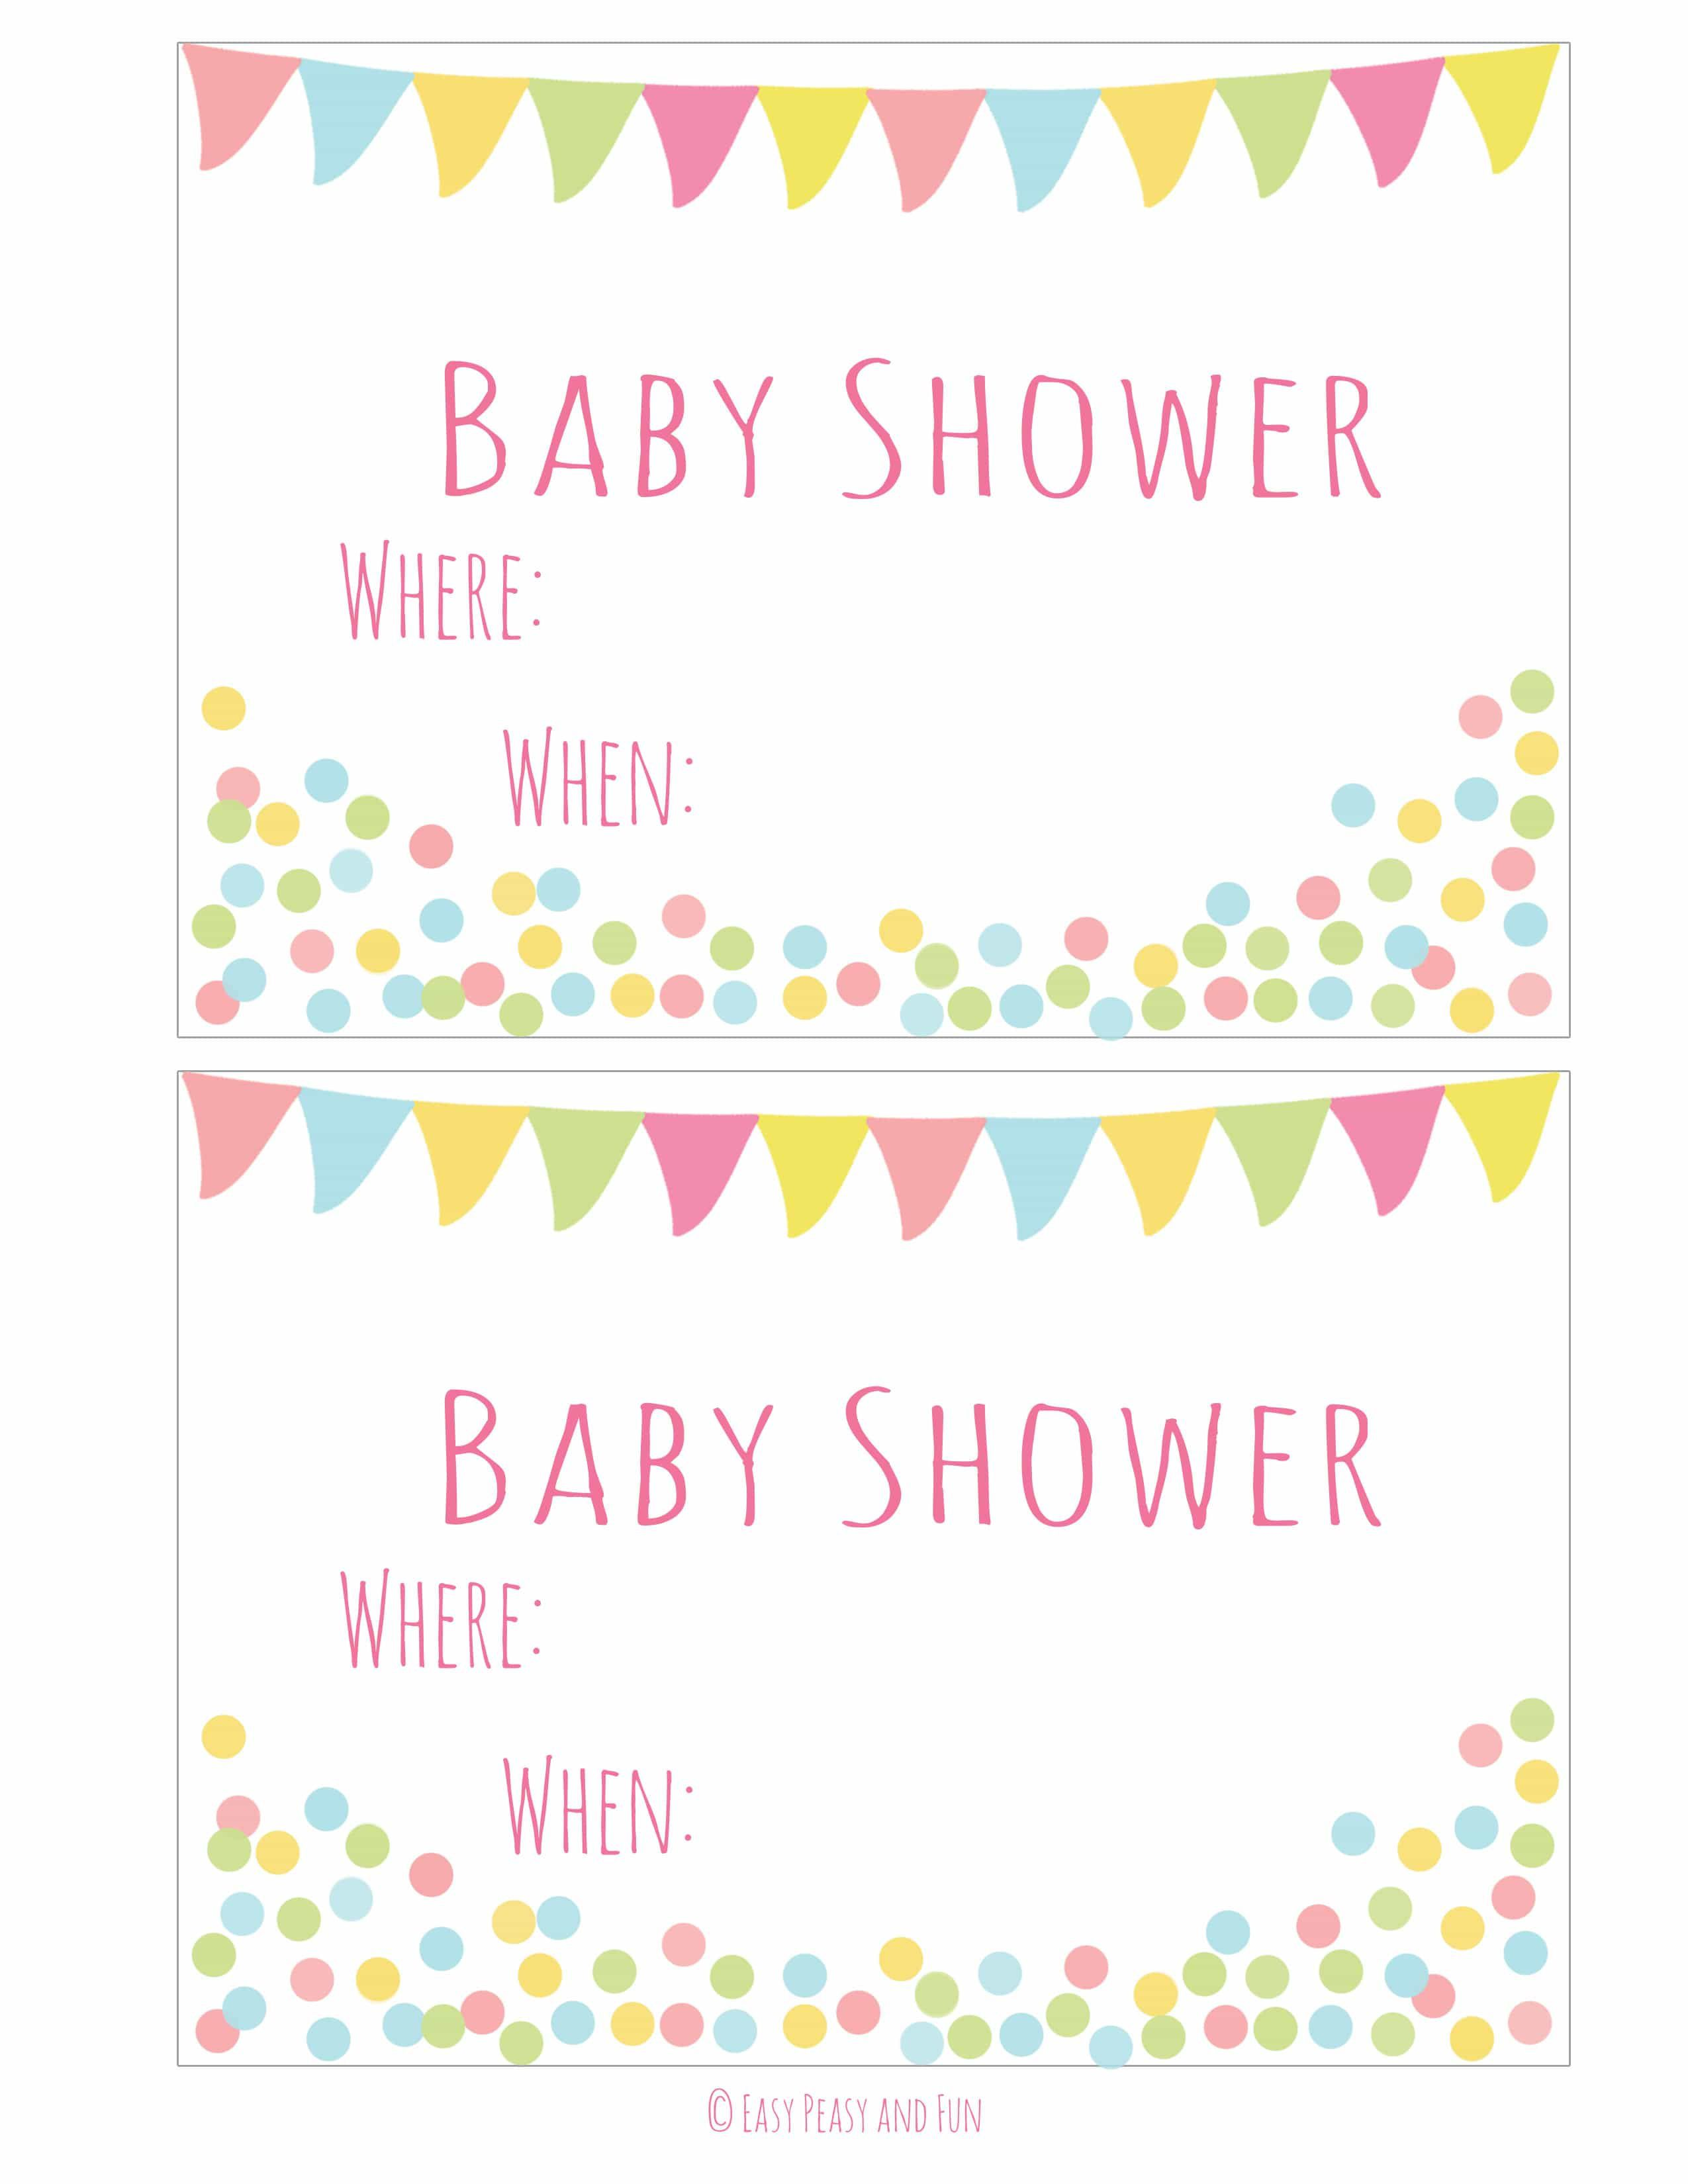 004 Unique Baby Shower Template Free Printable High Definition  Superhero Invitation For A Boy DiaperFull